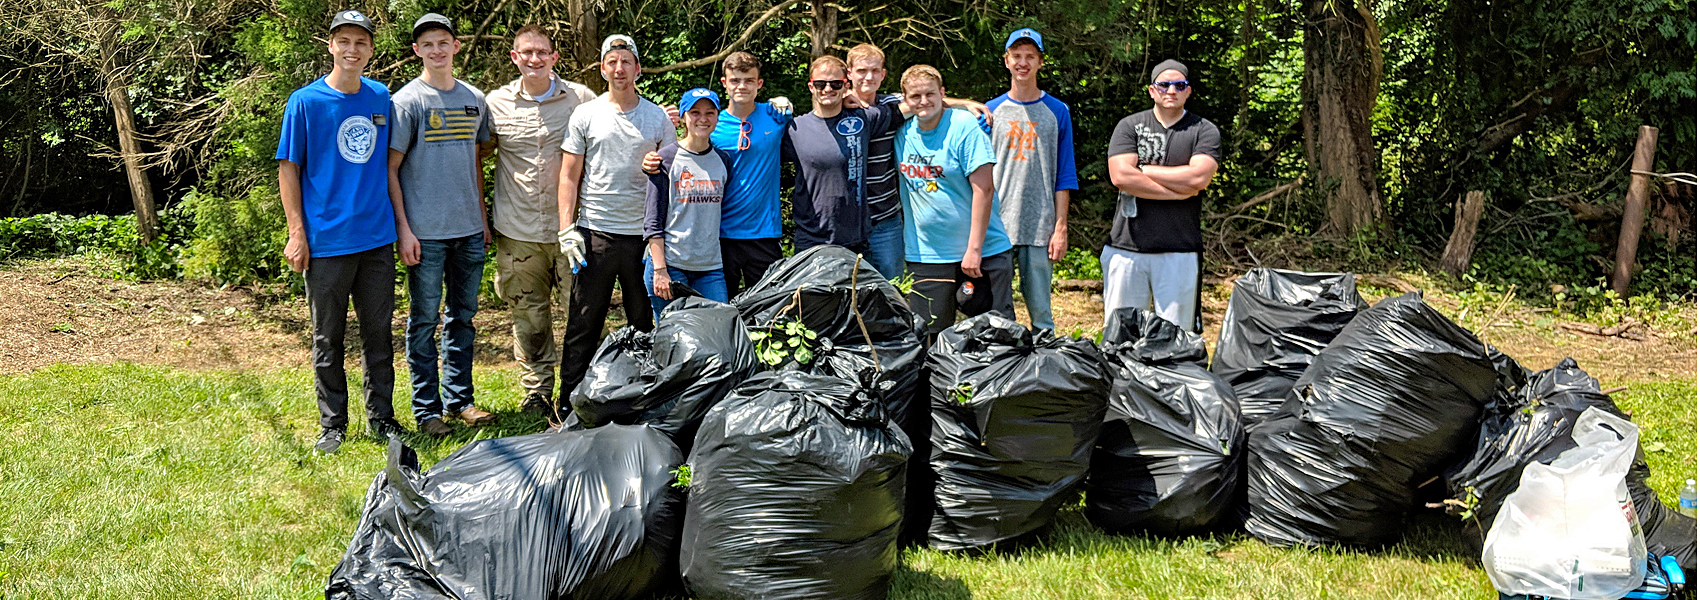 Park cleanup crew poses with about a dozen bags of trash